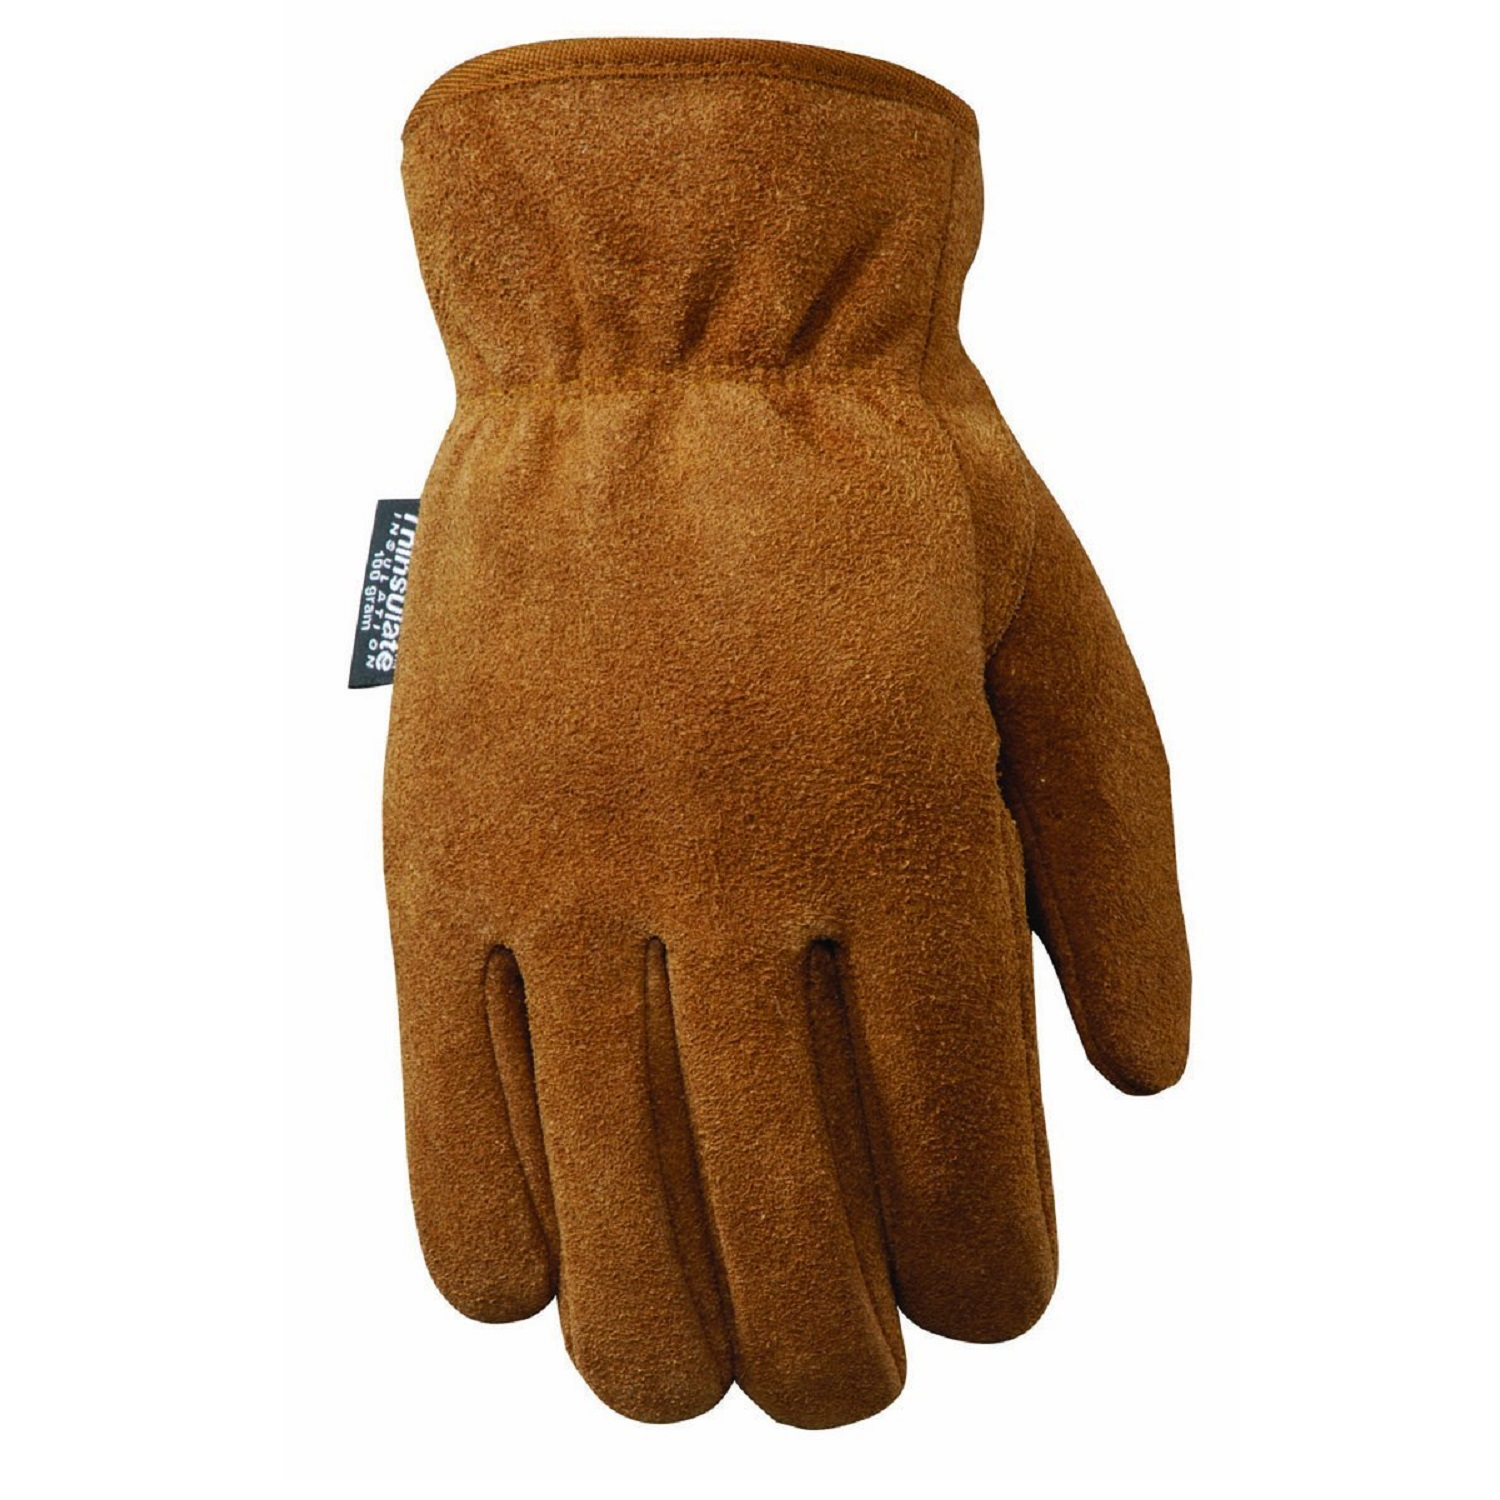 Wells Lamont Suede Cowhide Work Gloves for Men XL